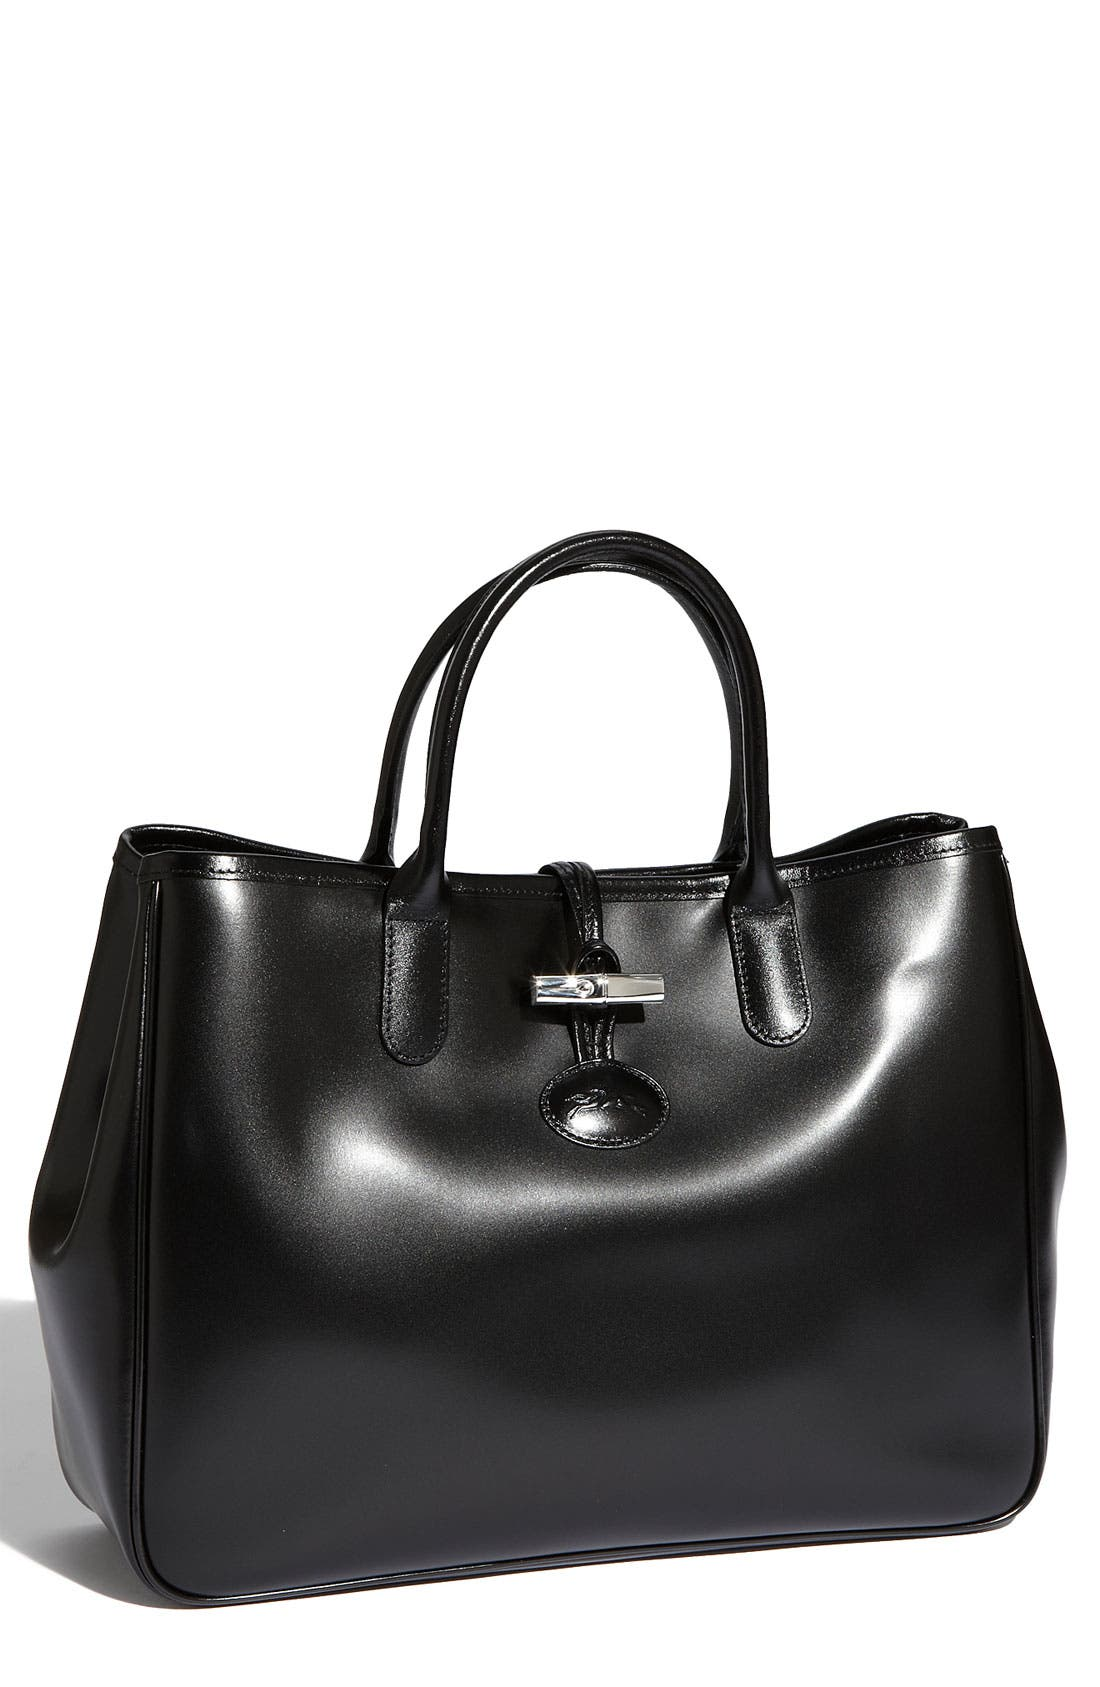 Alternate Image 1 Selected - Longchamp 'Roseau' Tote